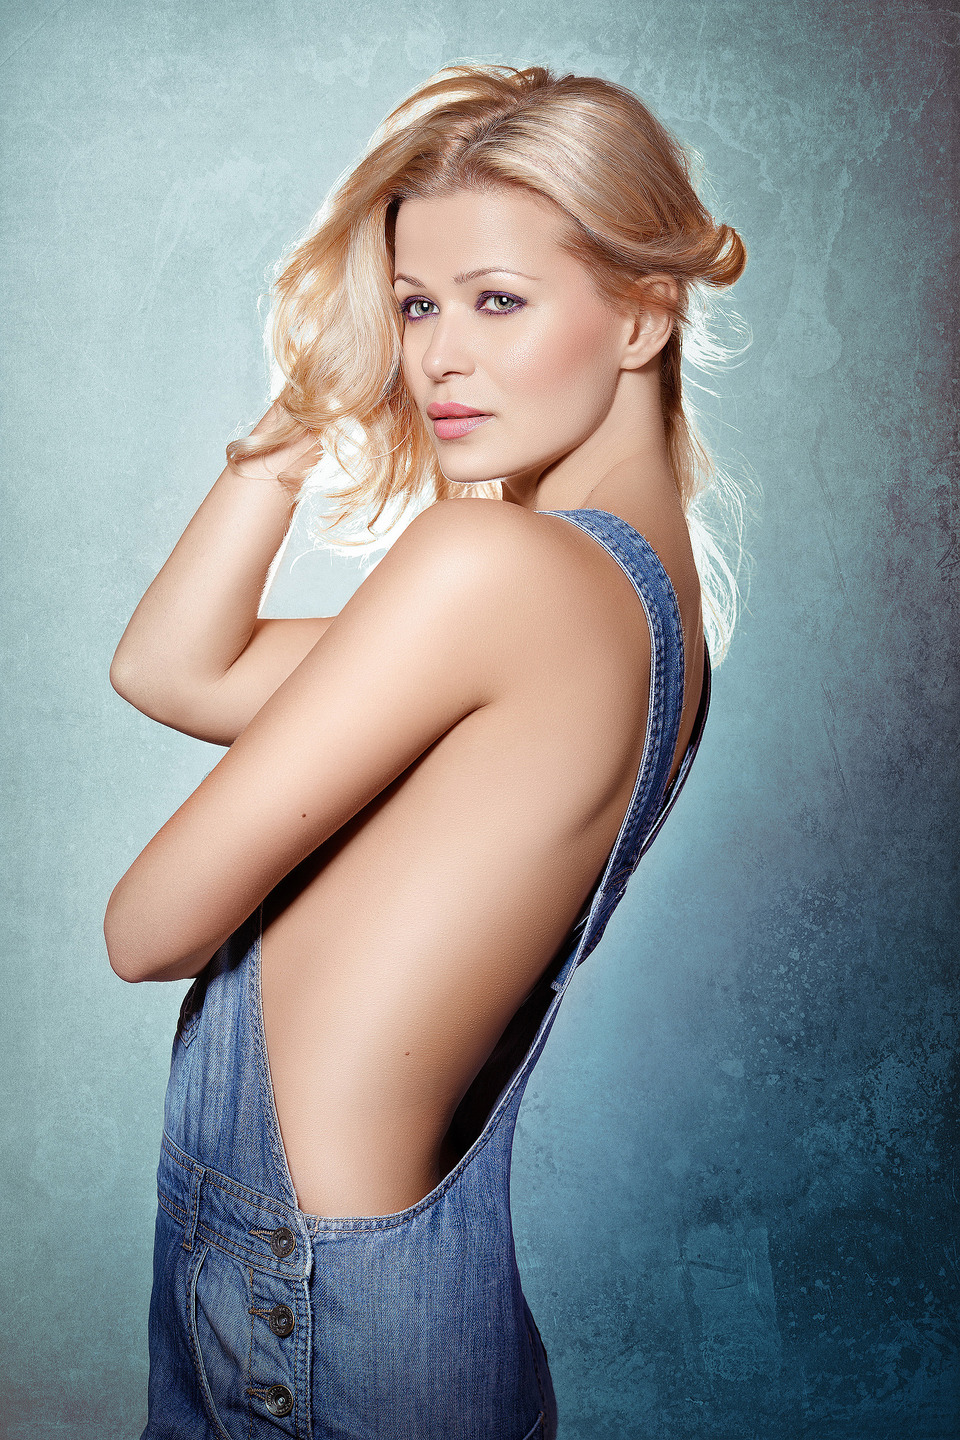 Model in the jumpsuit | photo, model, blonde, hair, denim, blue, make-up, nude, jumpsuit, background